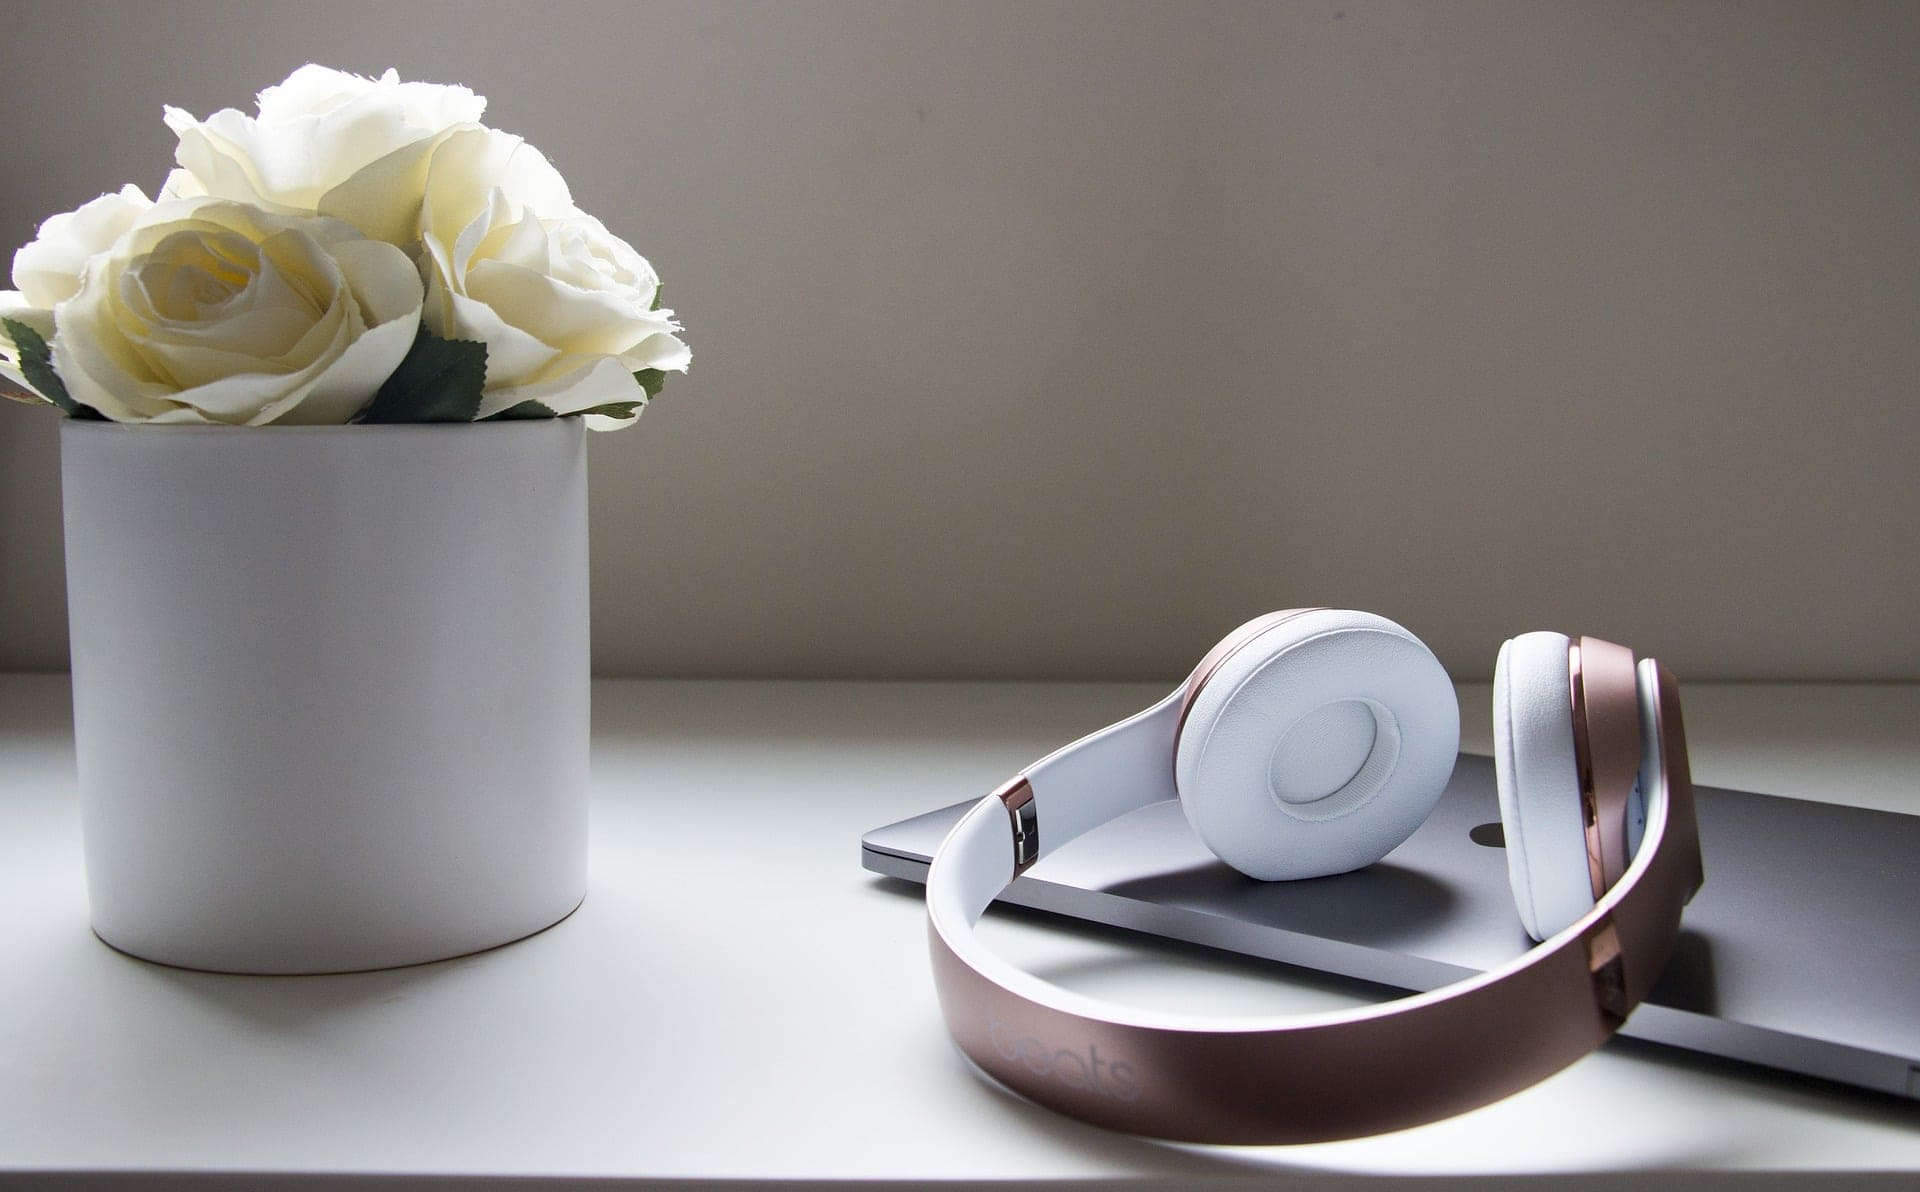 Beats Headphones - Which Should You Choose?